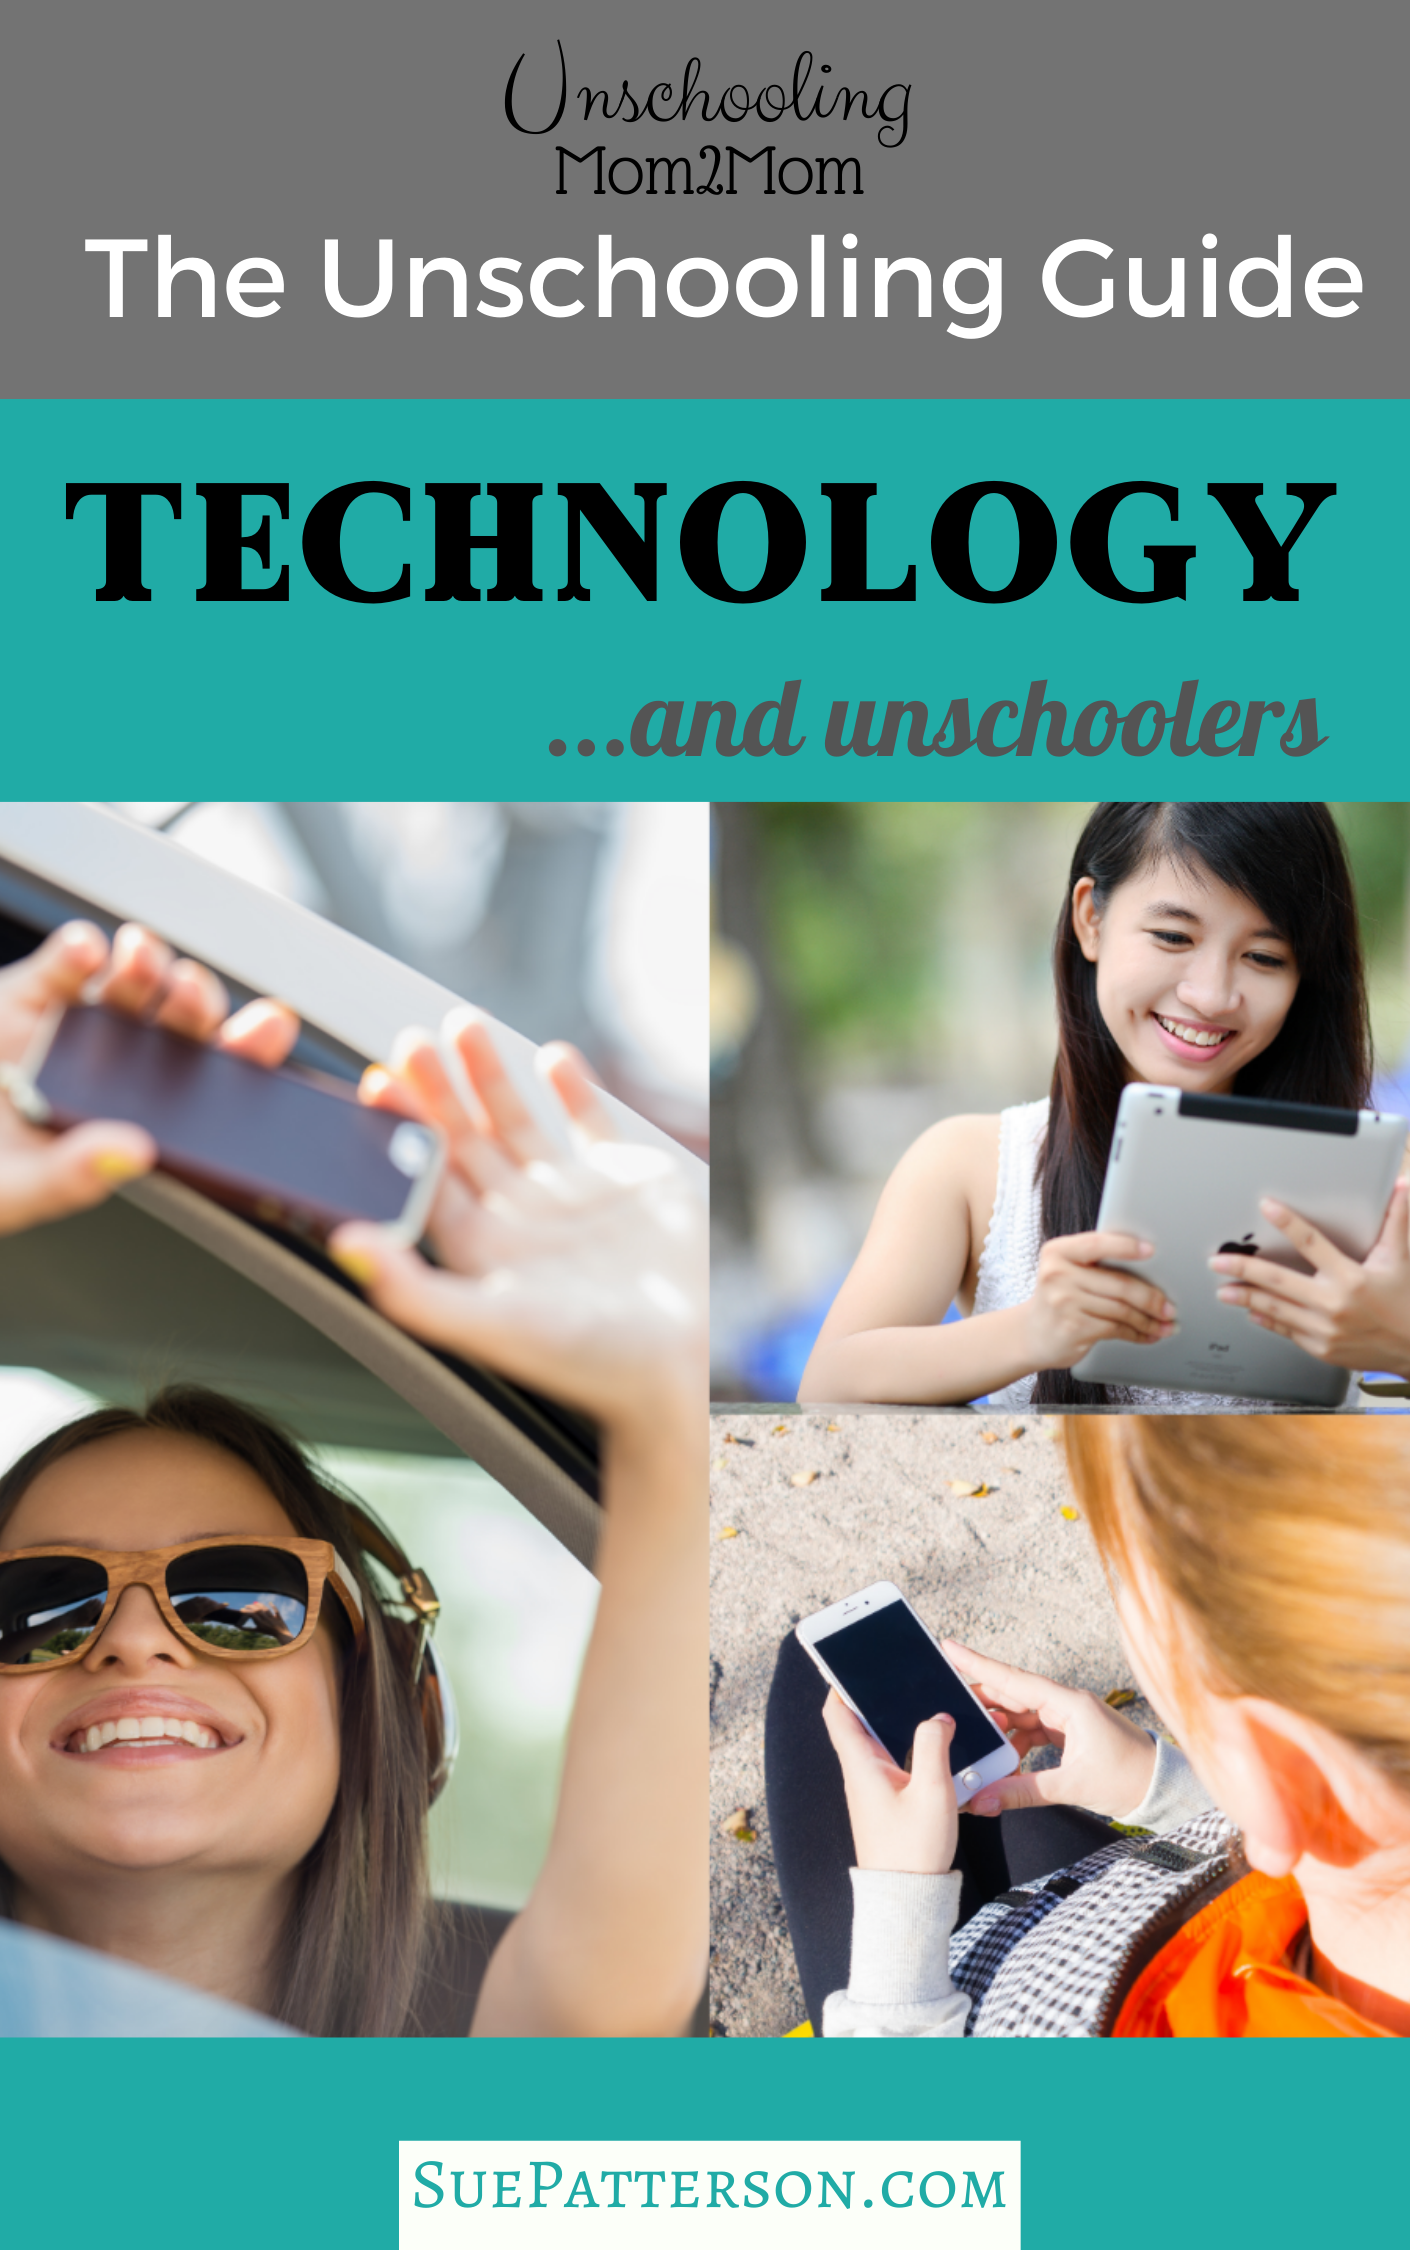 Technology and Unschooling